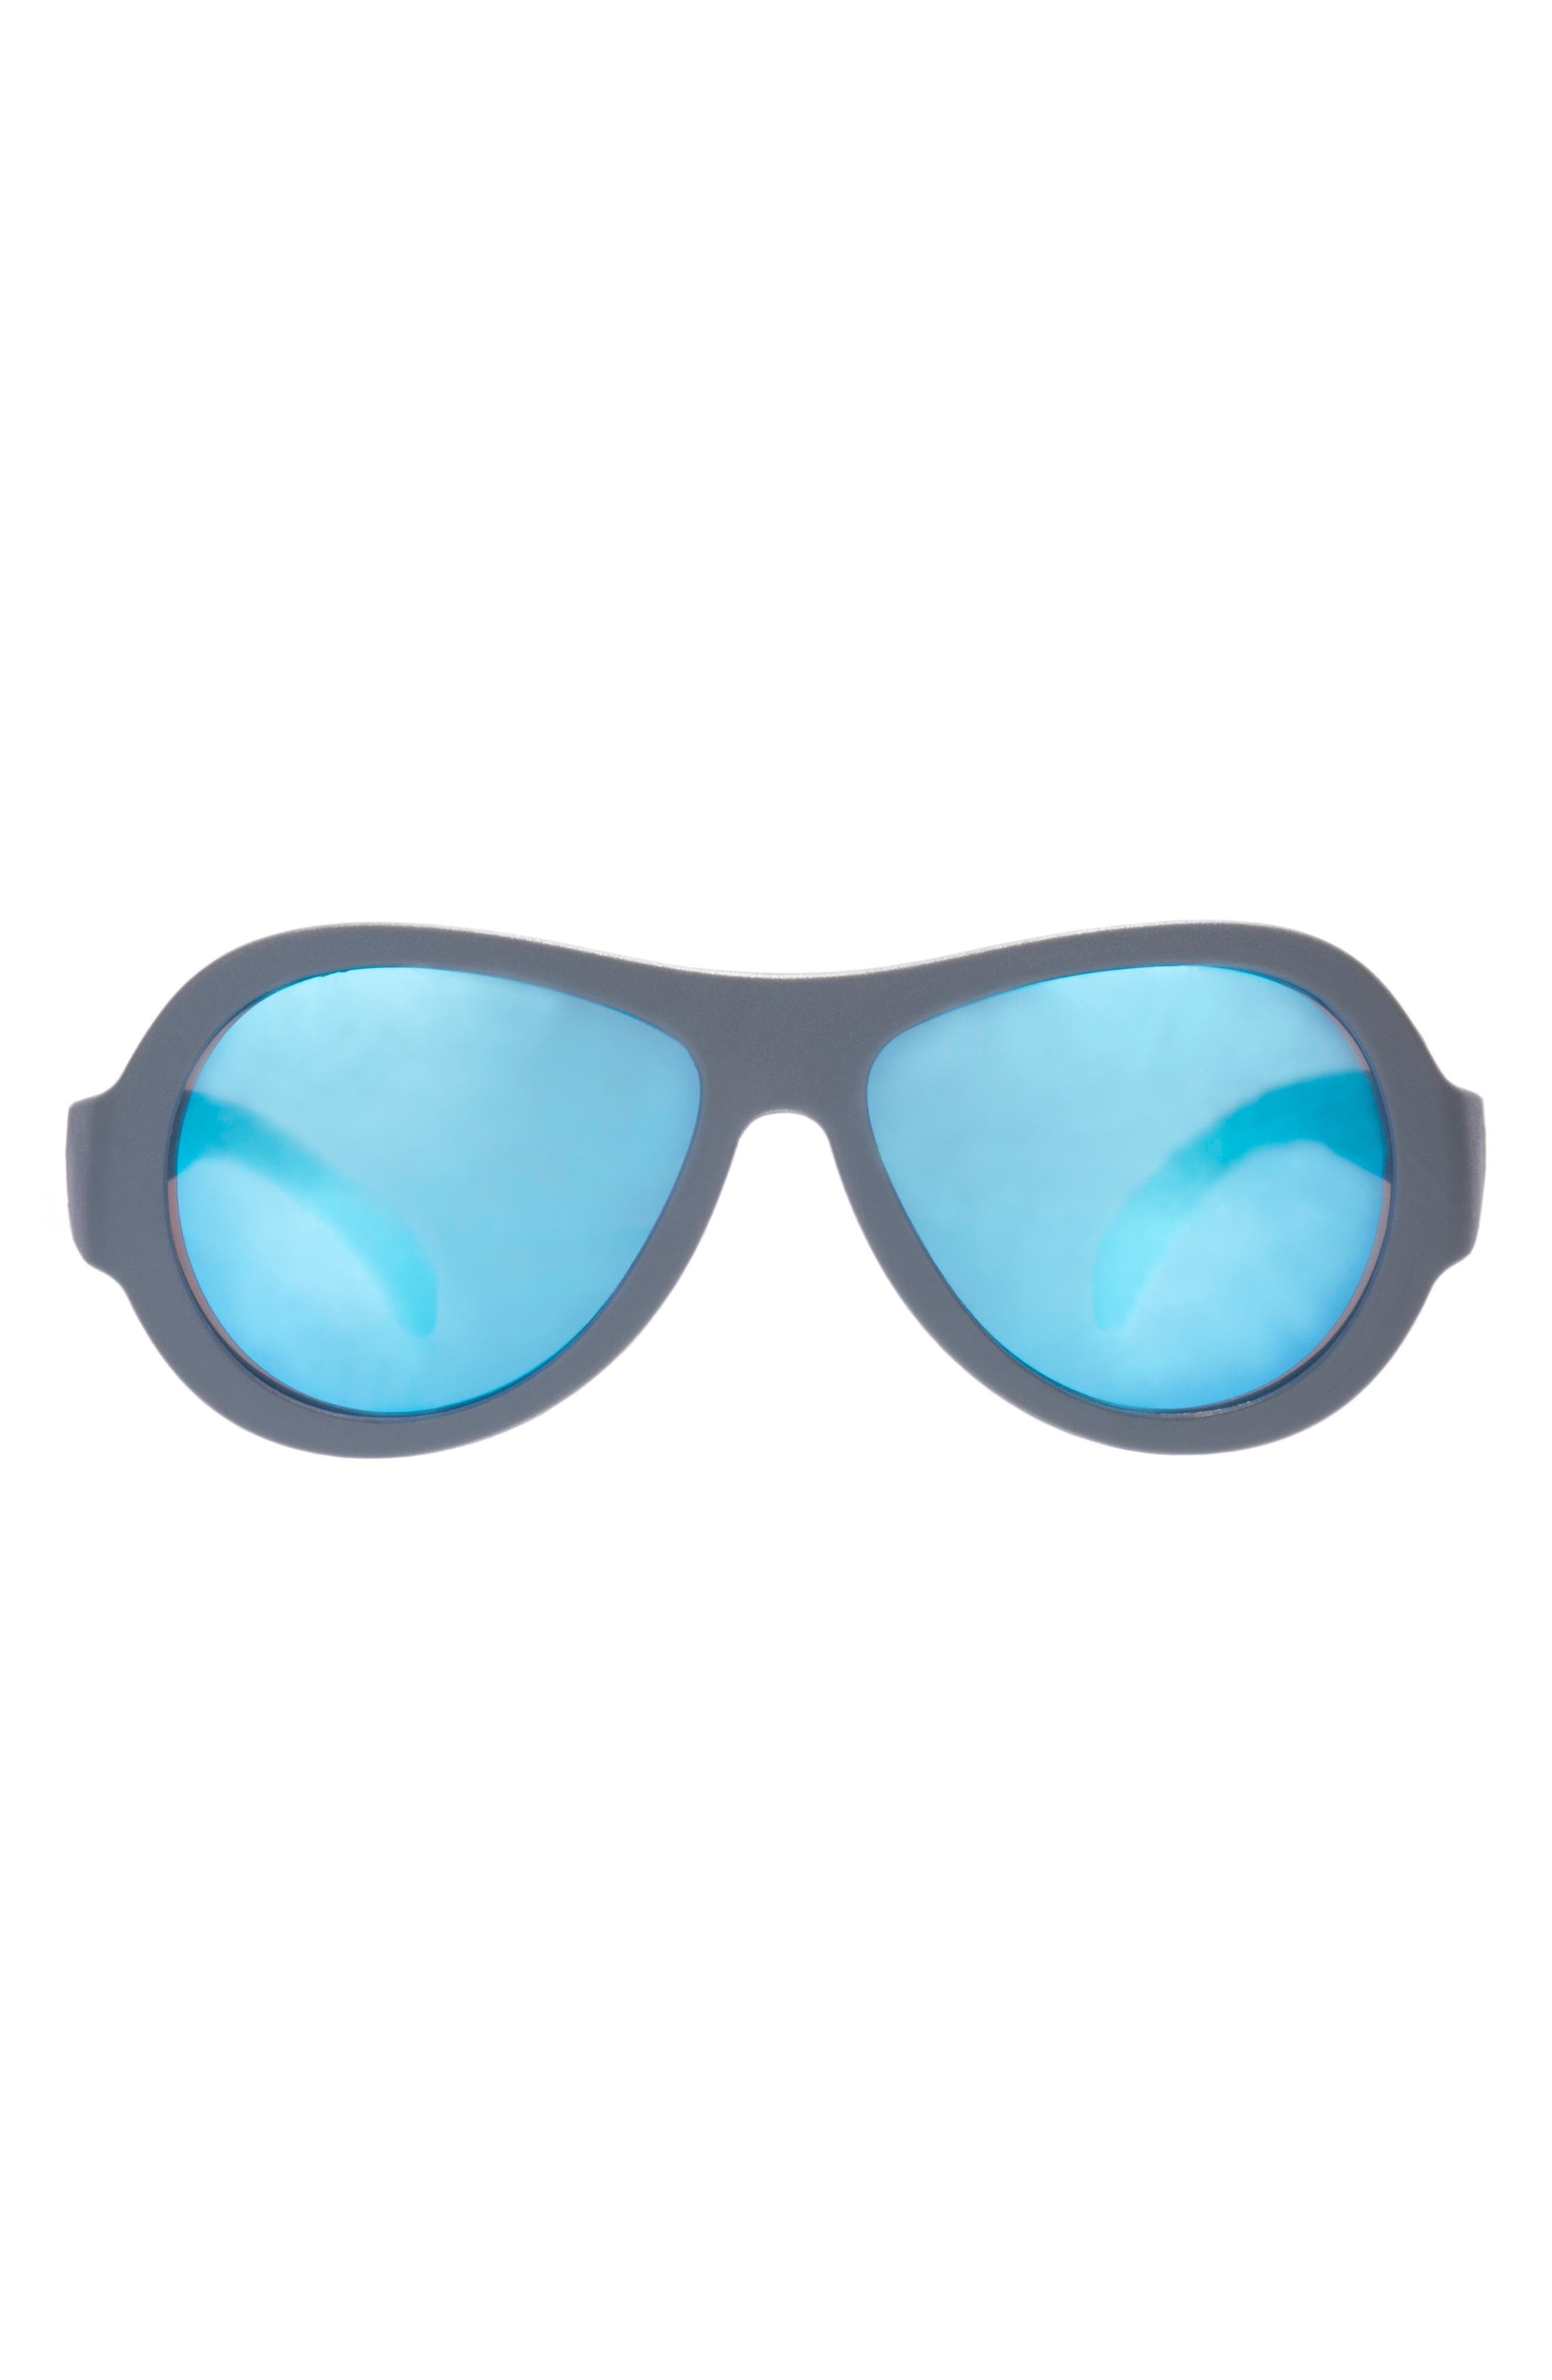 Original Aviator Sunglasses,                             Alternate thumbnail 4, color,                             BLUE STEEL